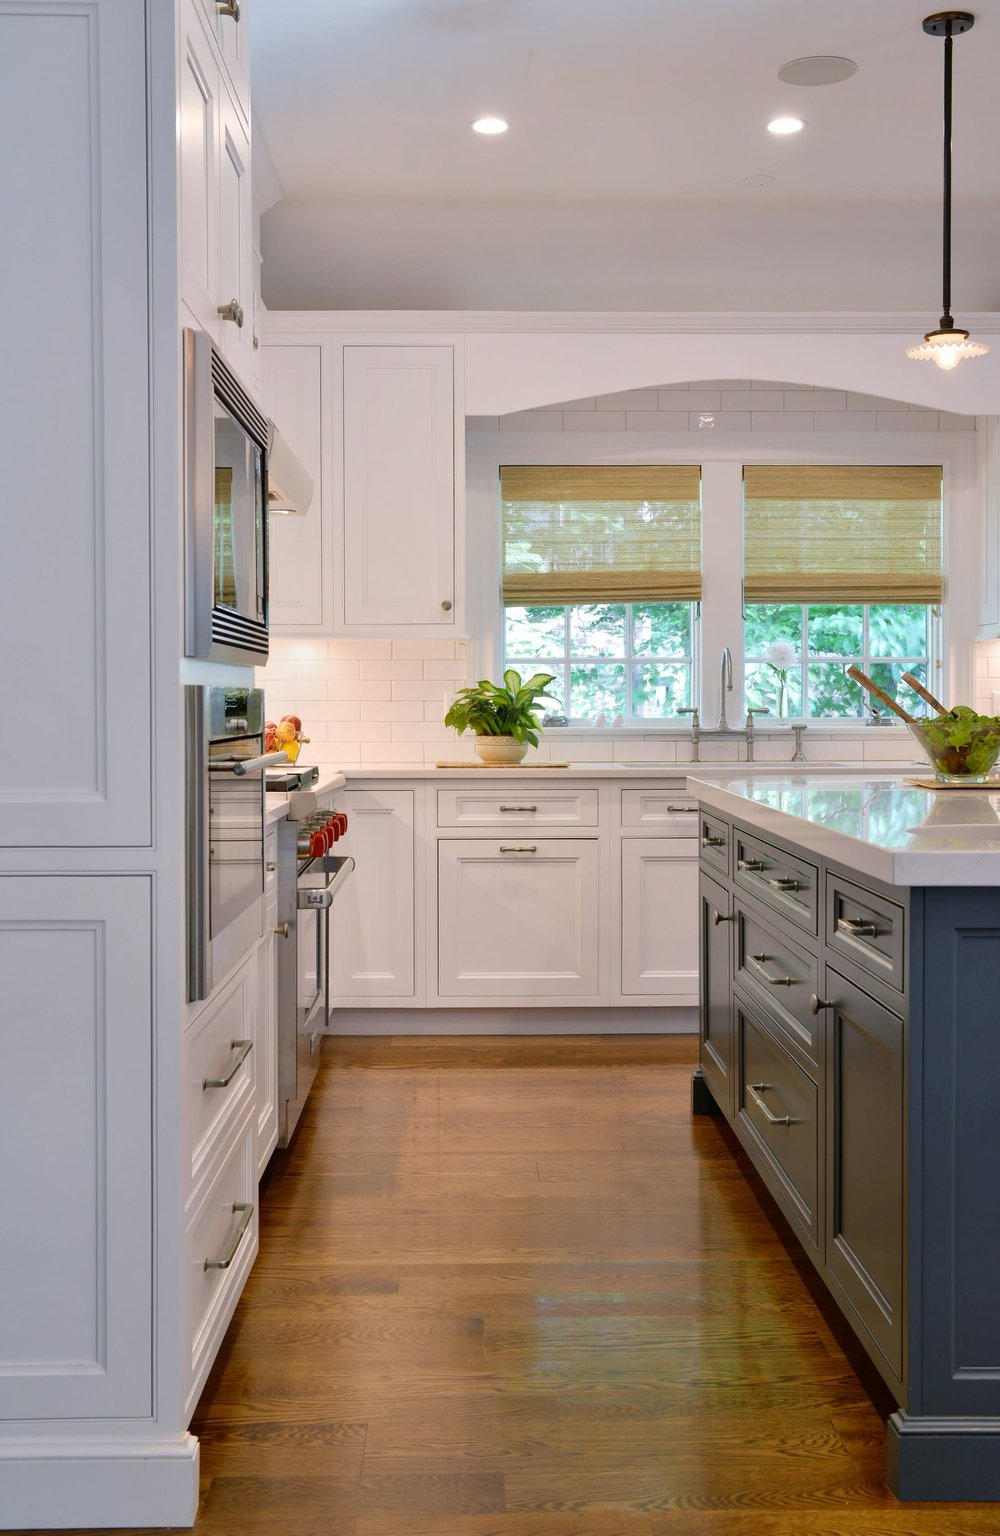 Transitional style kitchen with two french windows